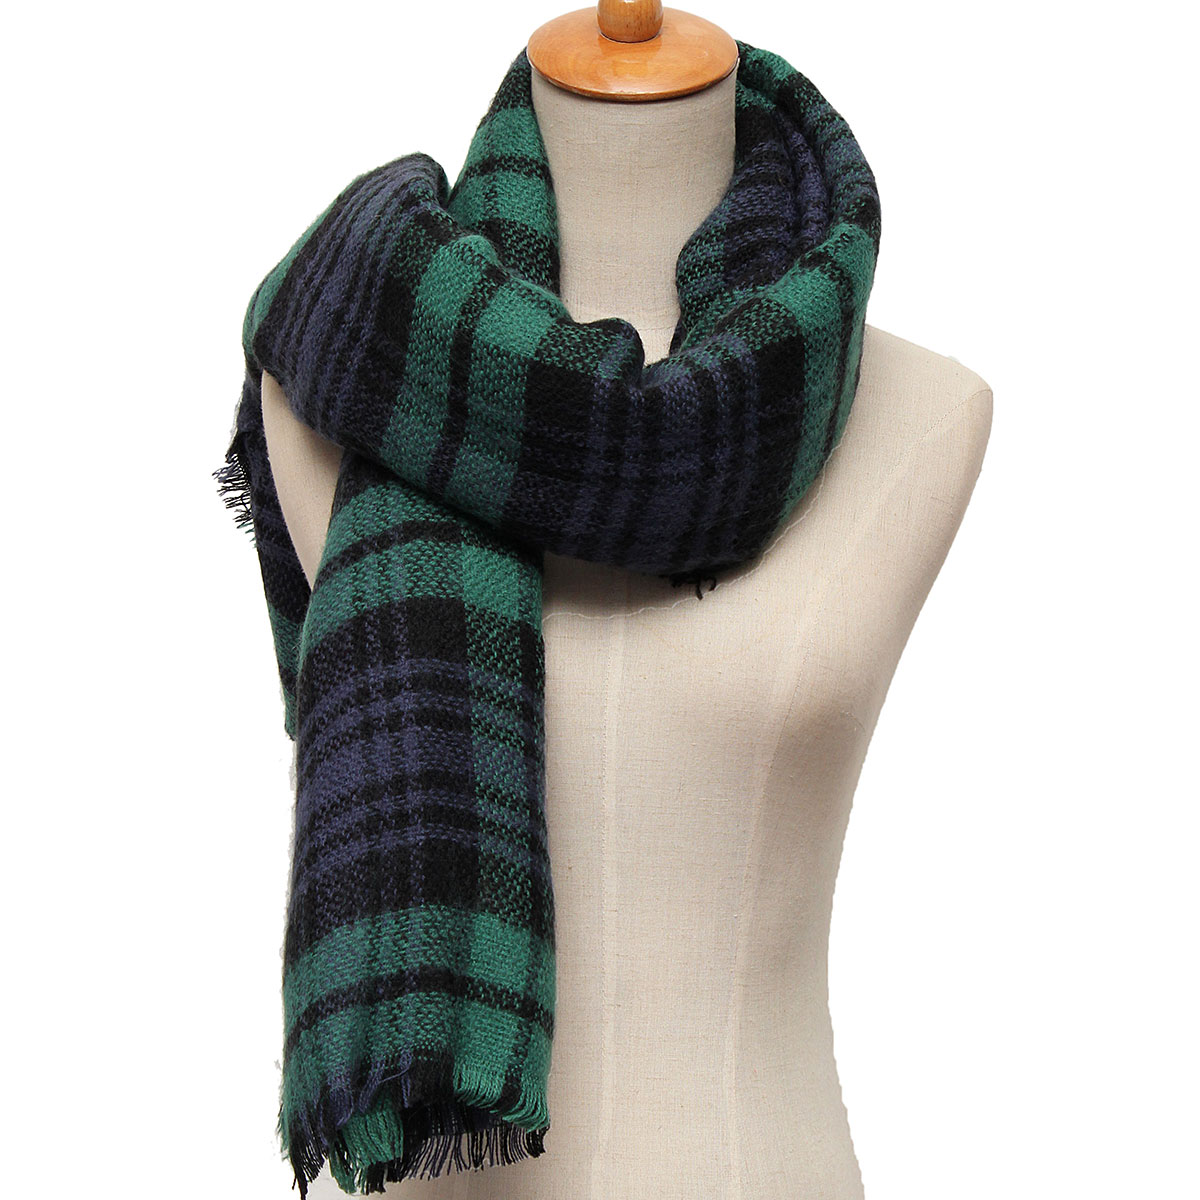 Women Ladies Wool Blend Tartan Neck Stole Plaid Grid Tassel Scarf Wrap Shawl Pashmina